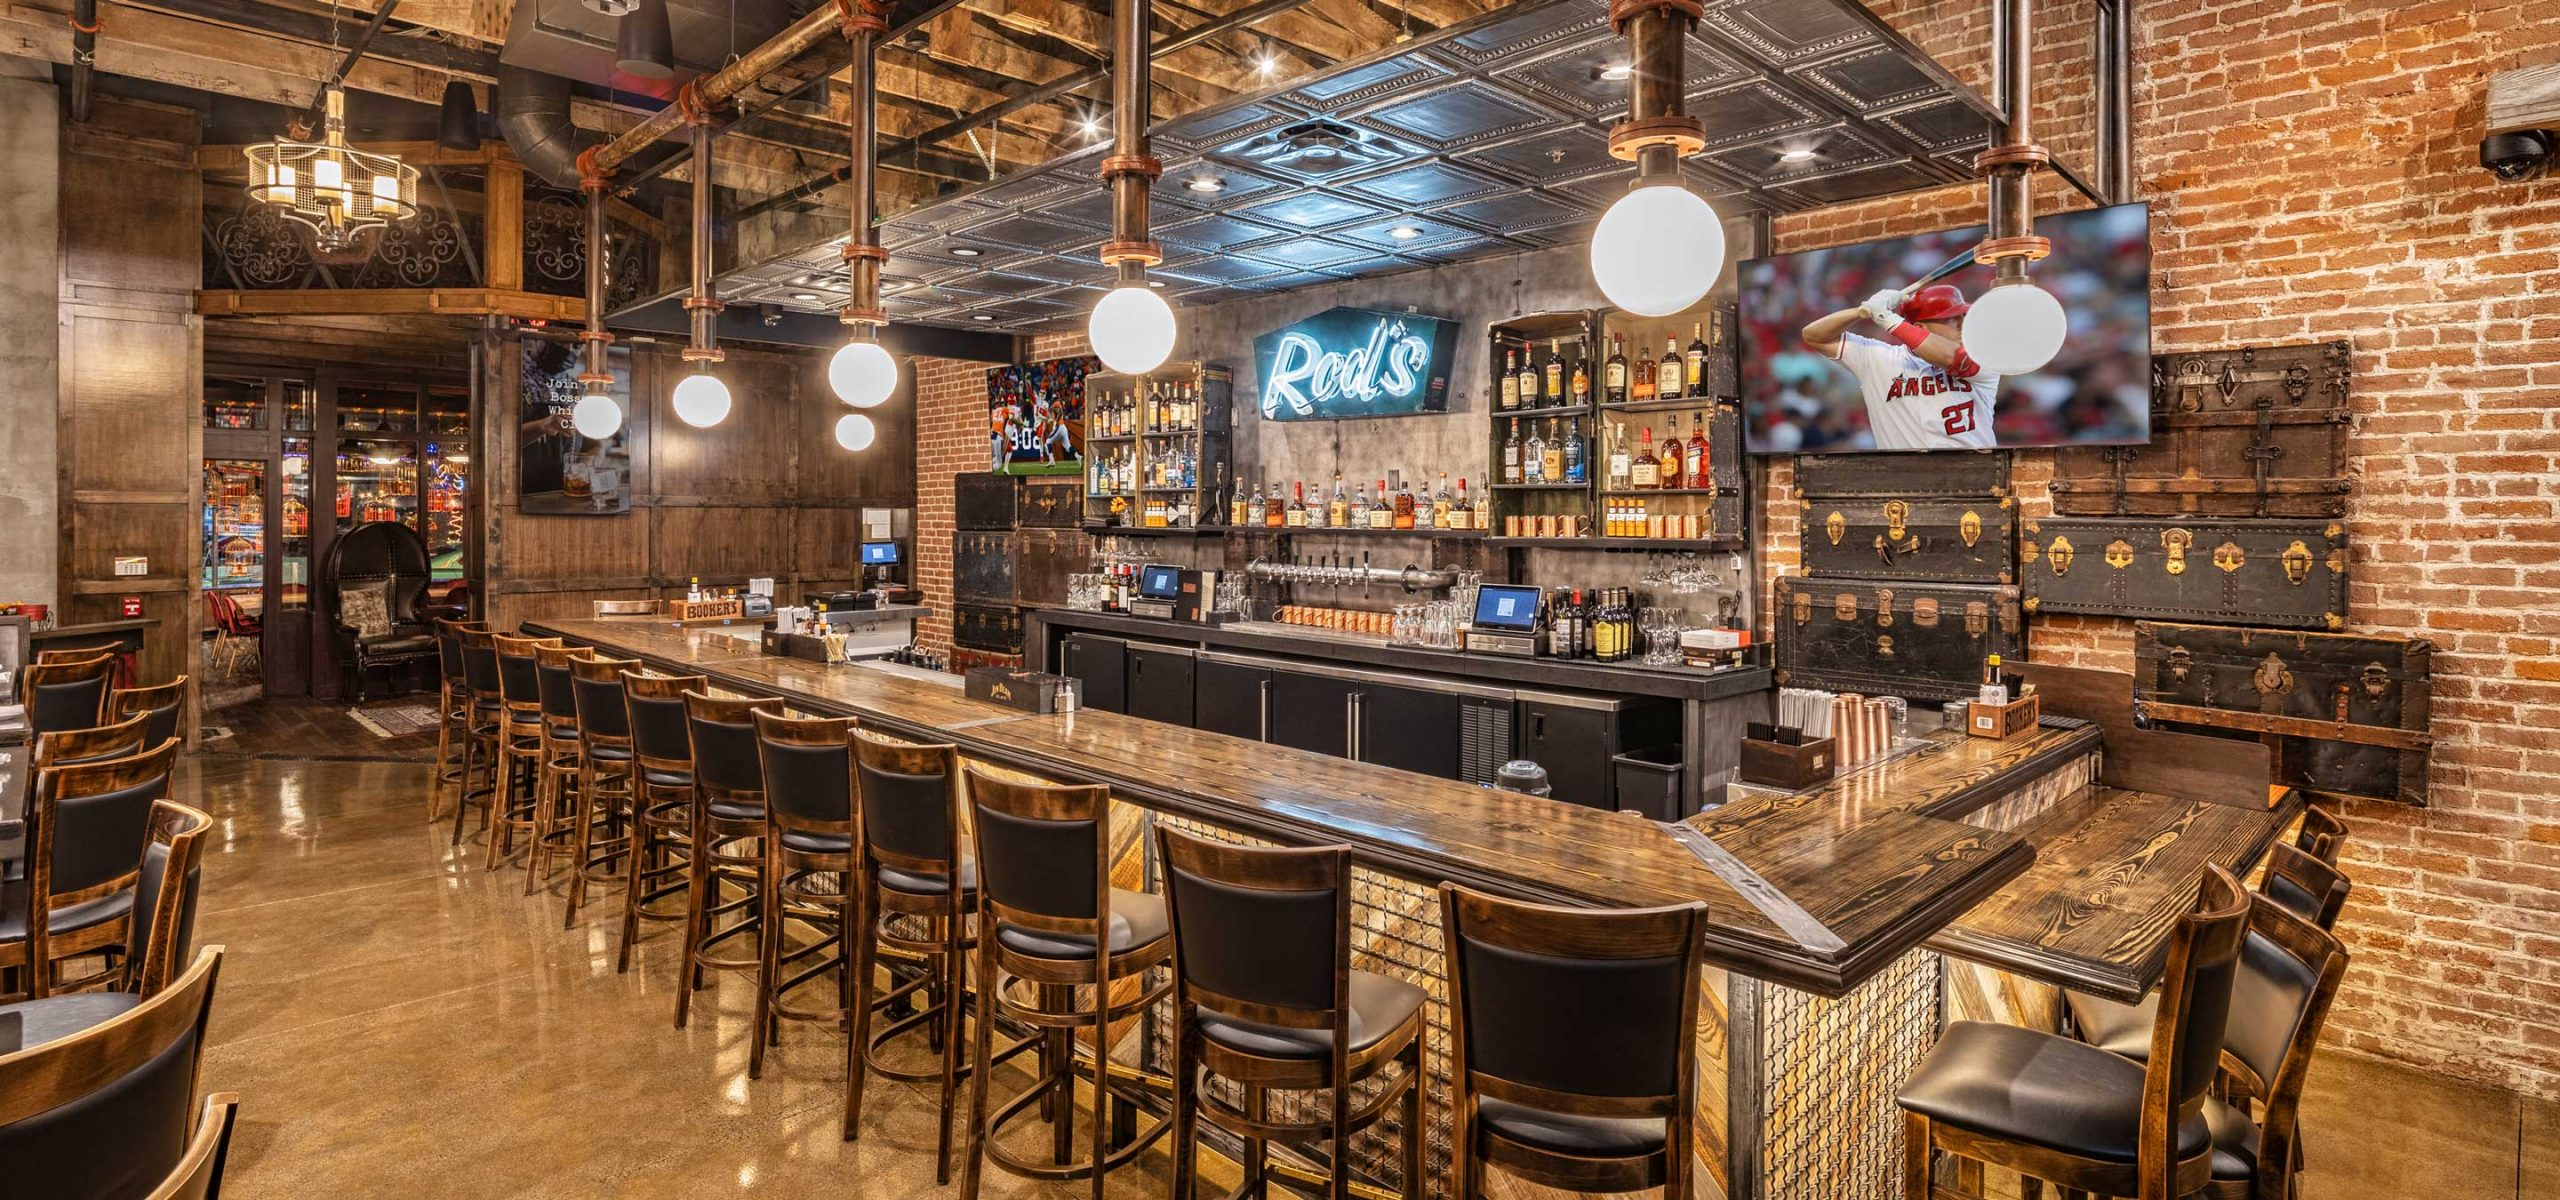 Bosscat Kitchen And Libations Ao Architects